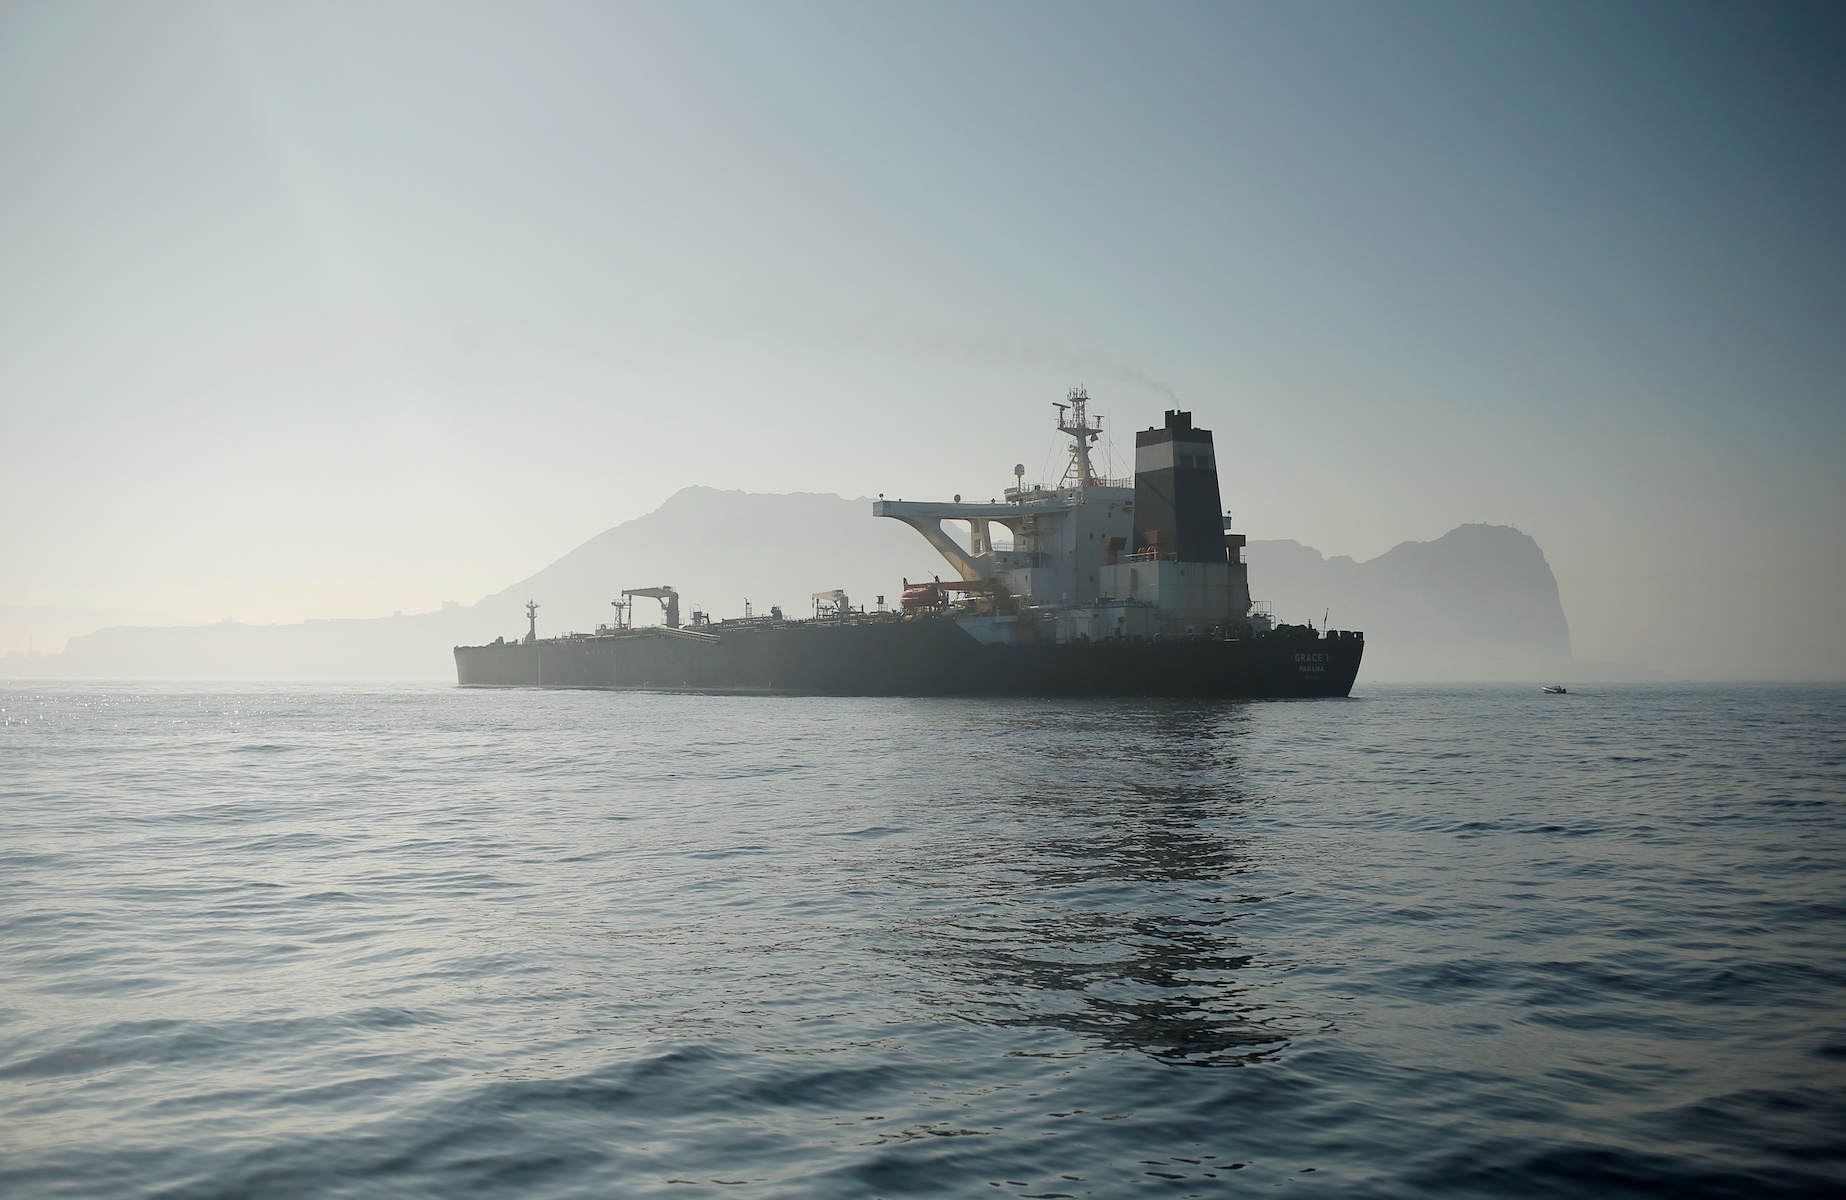 Iranian oil tanker Grace 1 sits anchored after it was seized in July by British Royal Marines off the coast of the British Mediterranean territory, in the Strait of Gibraltar